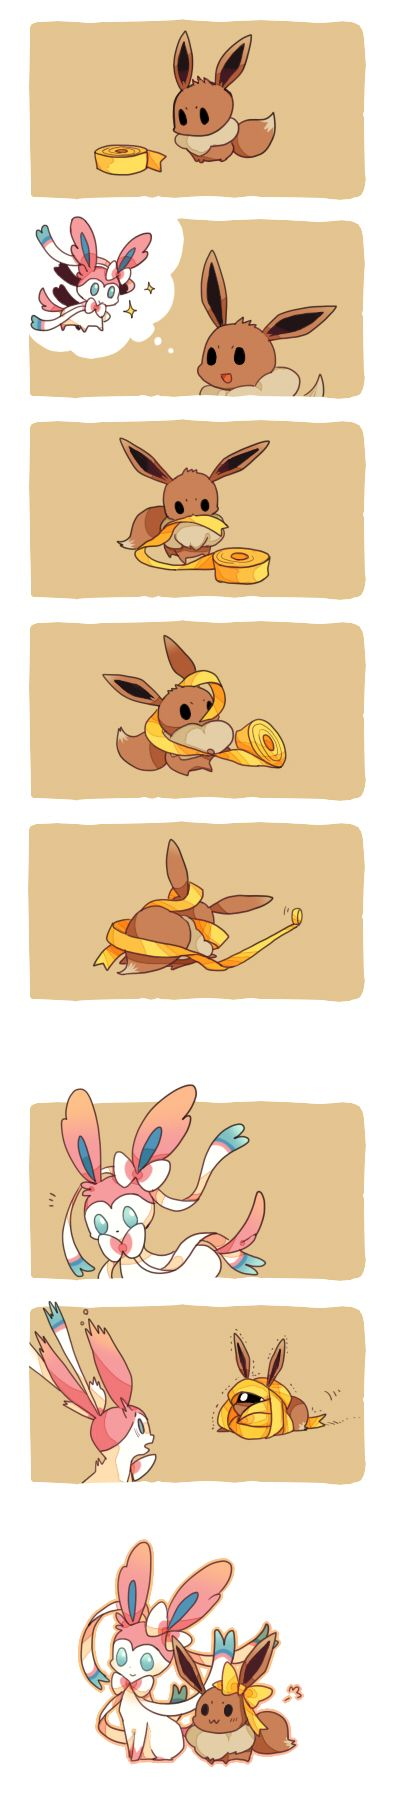 Pokemon X Y - Ninfia I thought the evolution method was going to be to let evolve with a pink ribbon or something but it Eevee evolves by friendship and learning a fairy type to evolve into Syleveon